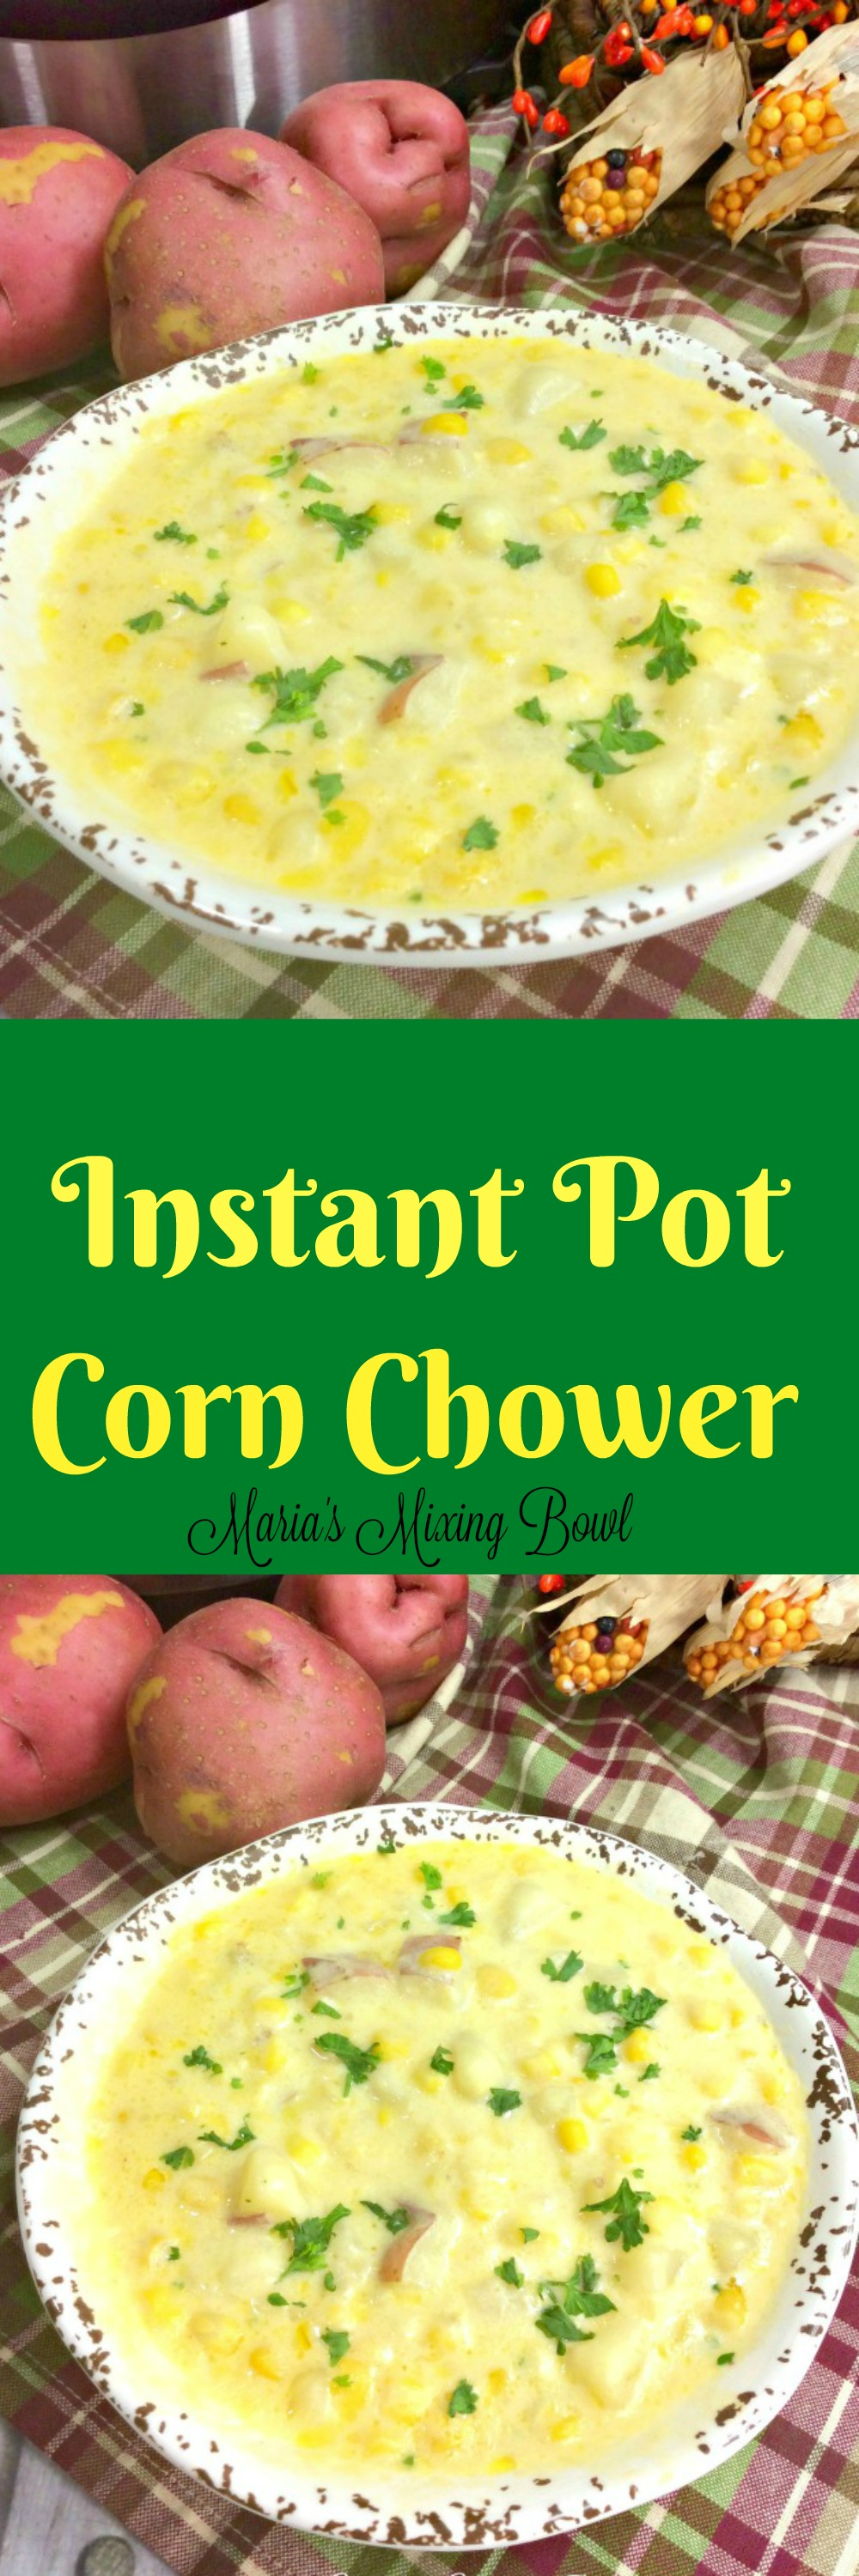 Instant Pot Corn Chowder Recipe- Thiscreamy, hearty, and full of flavorInstant Pot Corn Chowder eats more like a meal than a soup.It has just the right amount of creaminess without being too over the top thick, and it's also perfectly comforting.